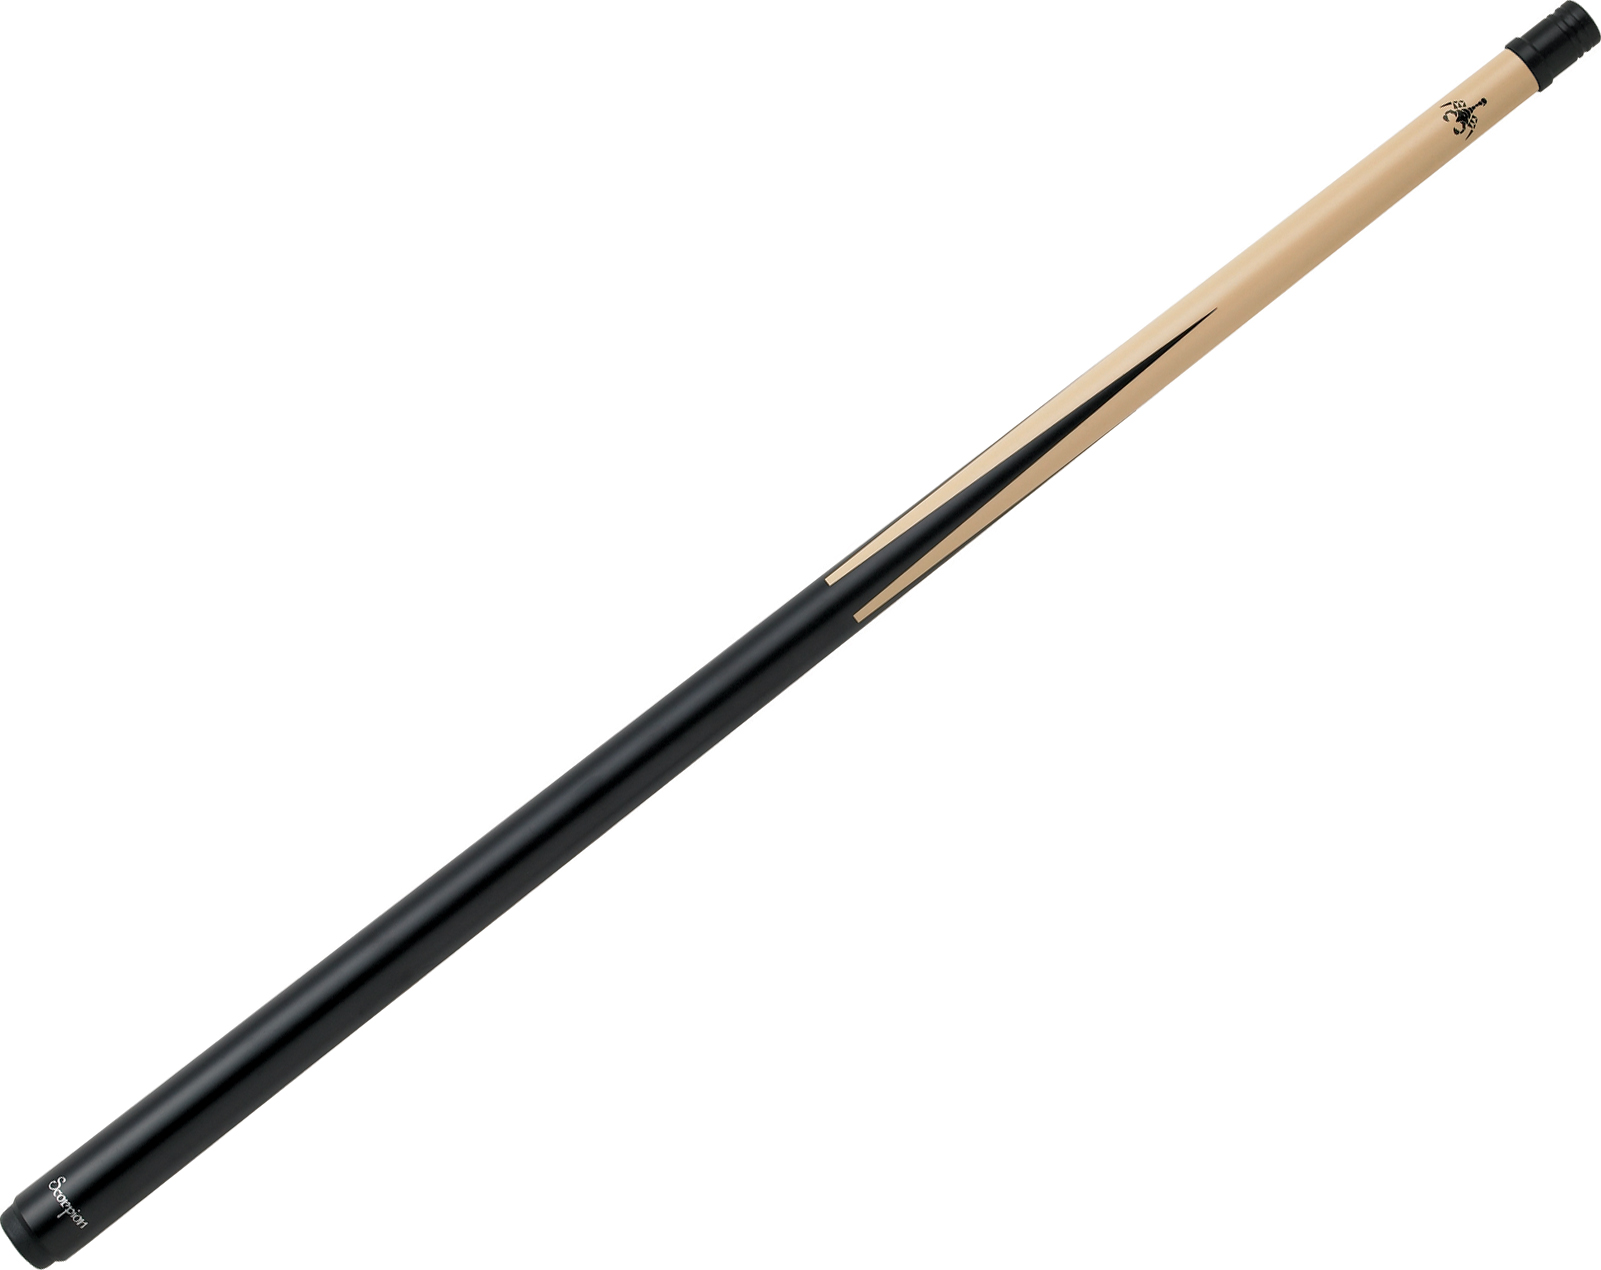 Scorpion SCO29 Black Sneaky Pete No Wrap Pool Billiards Cue Stick  c3a1e1c30